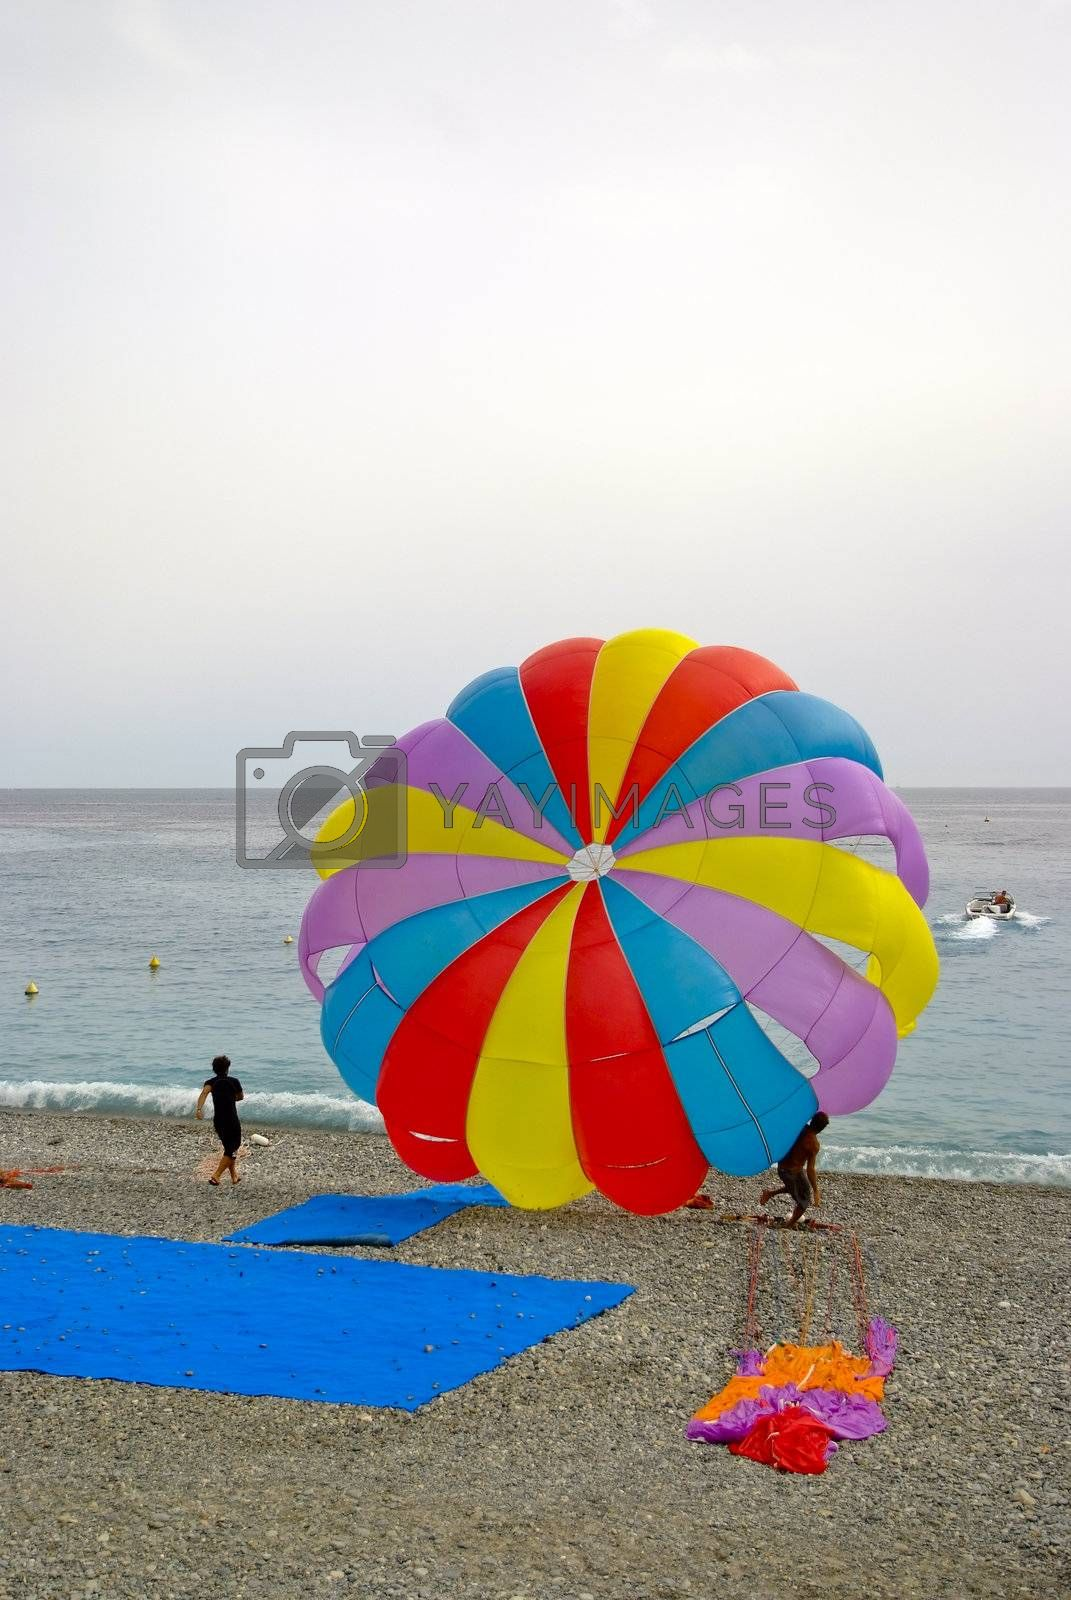 Sports activities at the mutual beach in Nice.